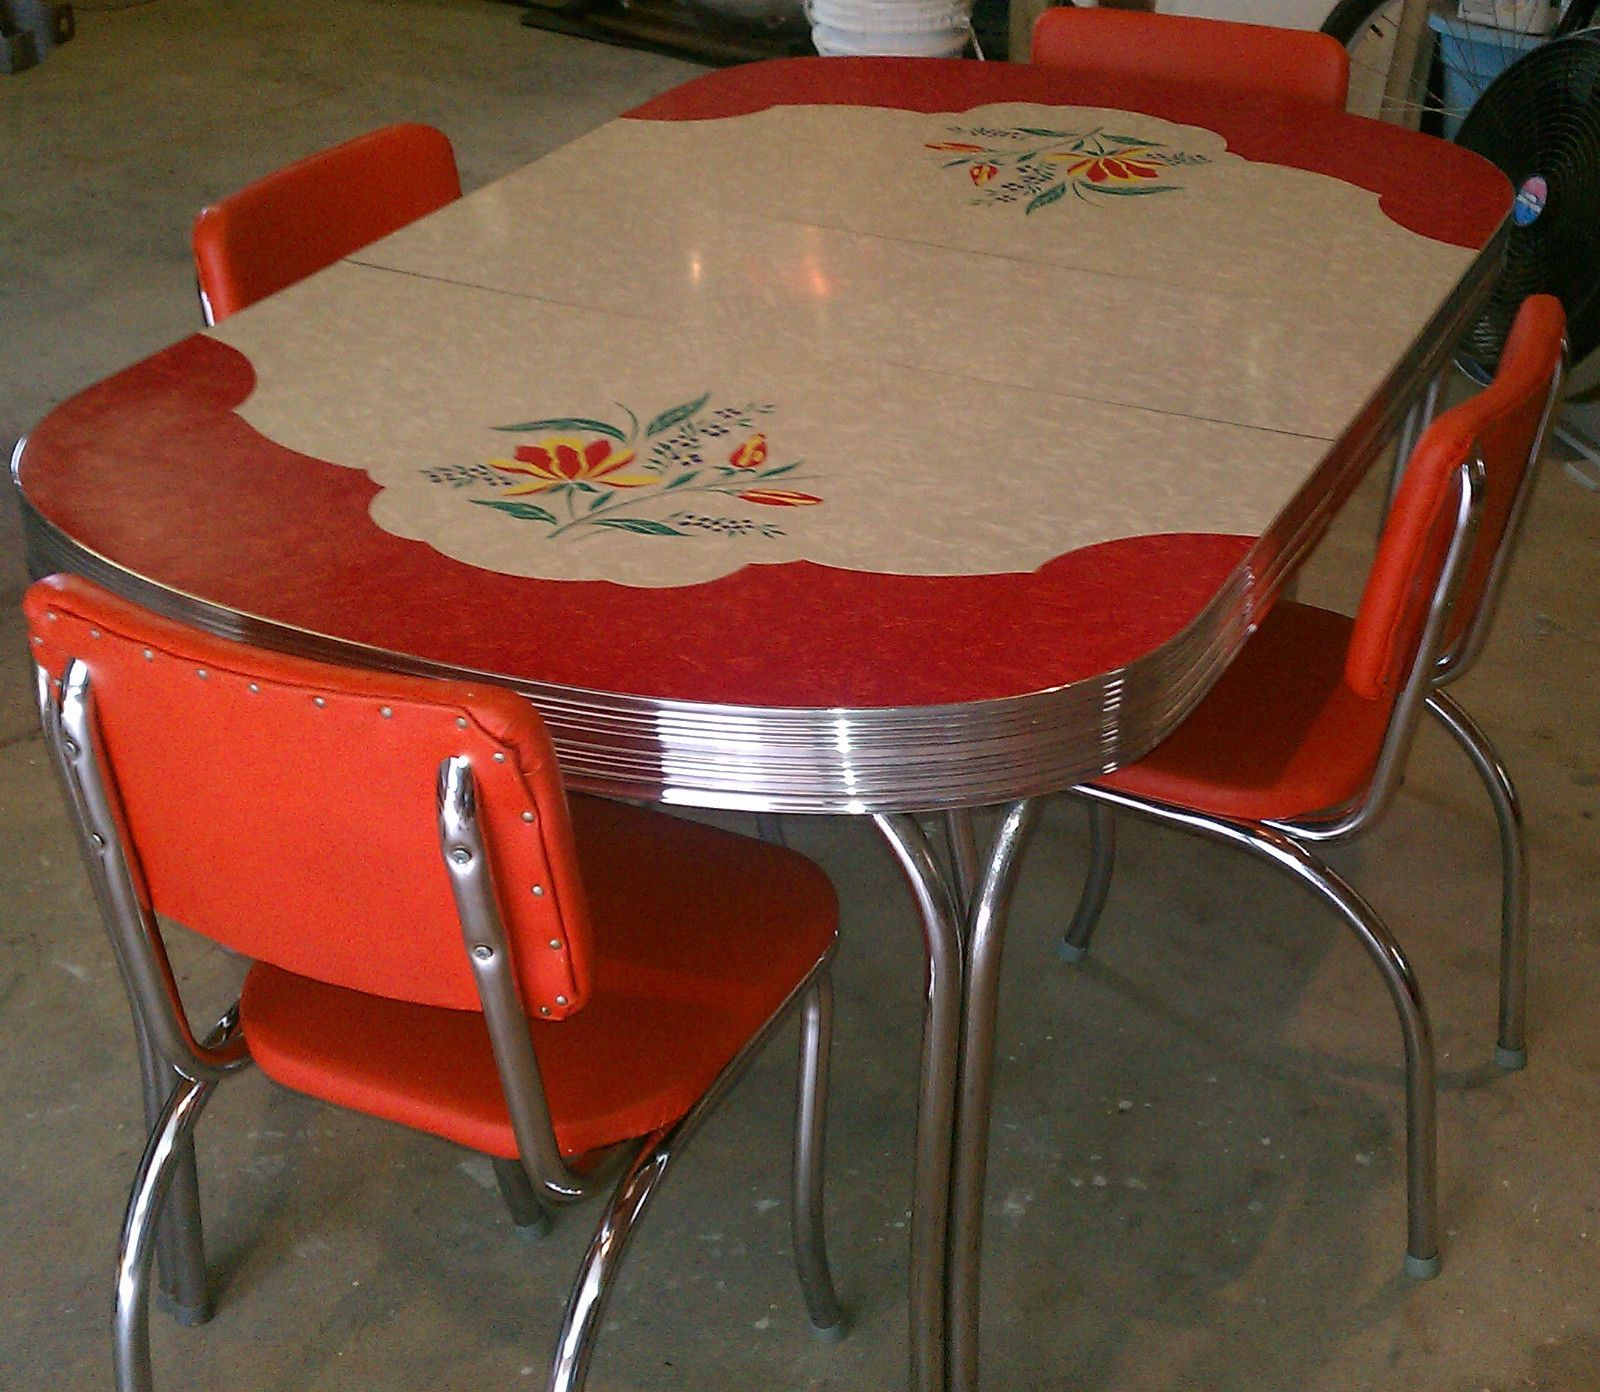 laminate kitchen table Love this table Vintage Kitchen Formica Table 4 Chairs Chrome Orange Red White Gray